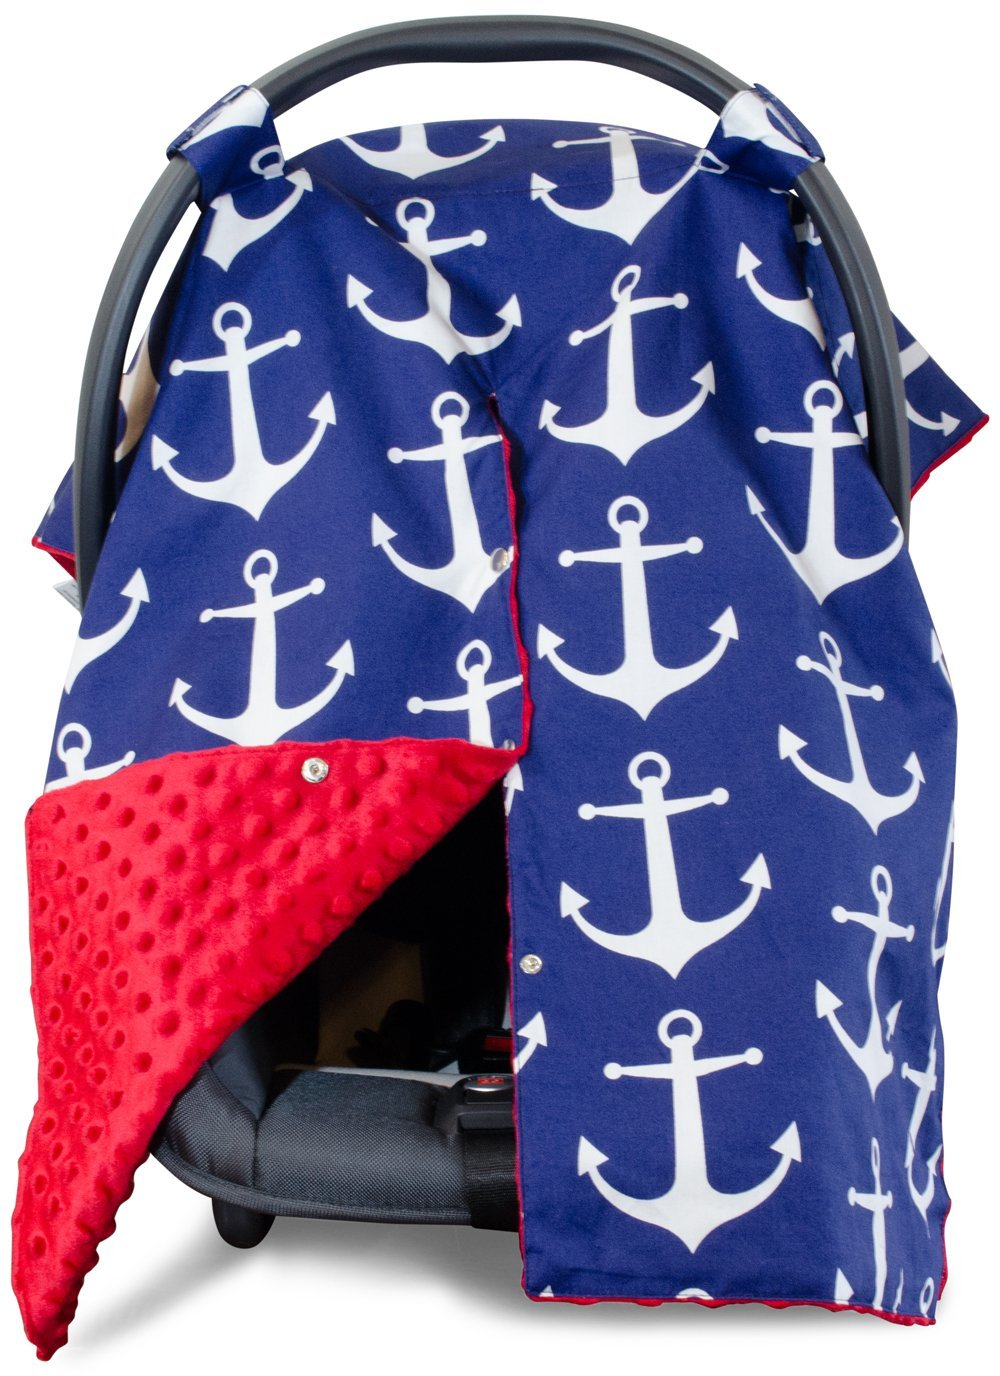 2 in 1 Carseat Canopy and Nursing Cover Up with Peekaboo Opening | Large Infant Car Seat Canopy for Girl or Boy | Best Baby Shower Gift for Breastfeeding Moms | Navy Blue Anchor Pattern with Red Minky Kids N' Such